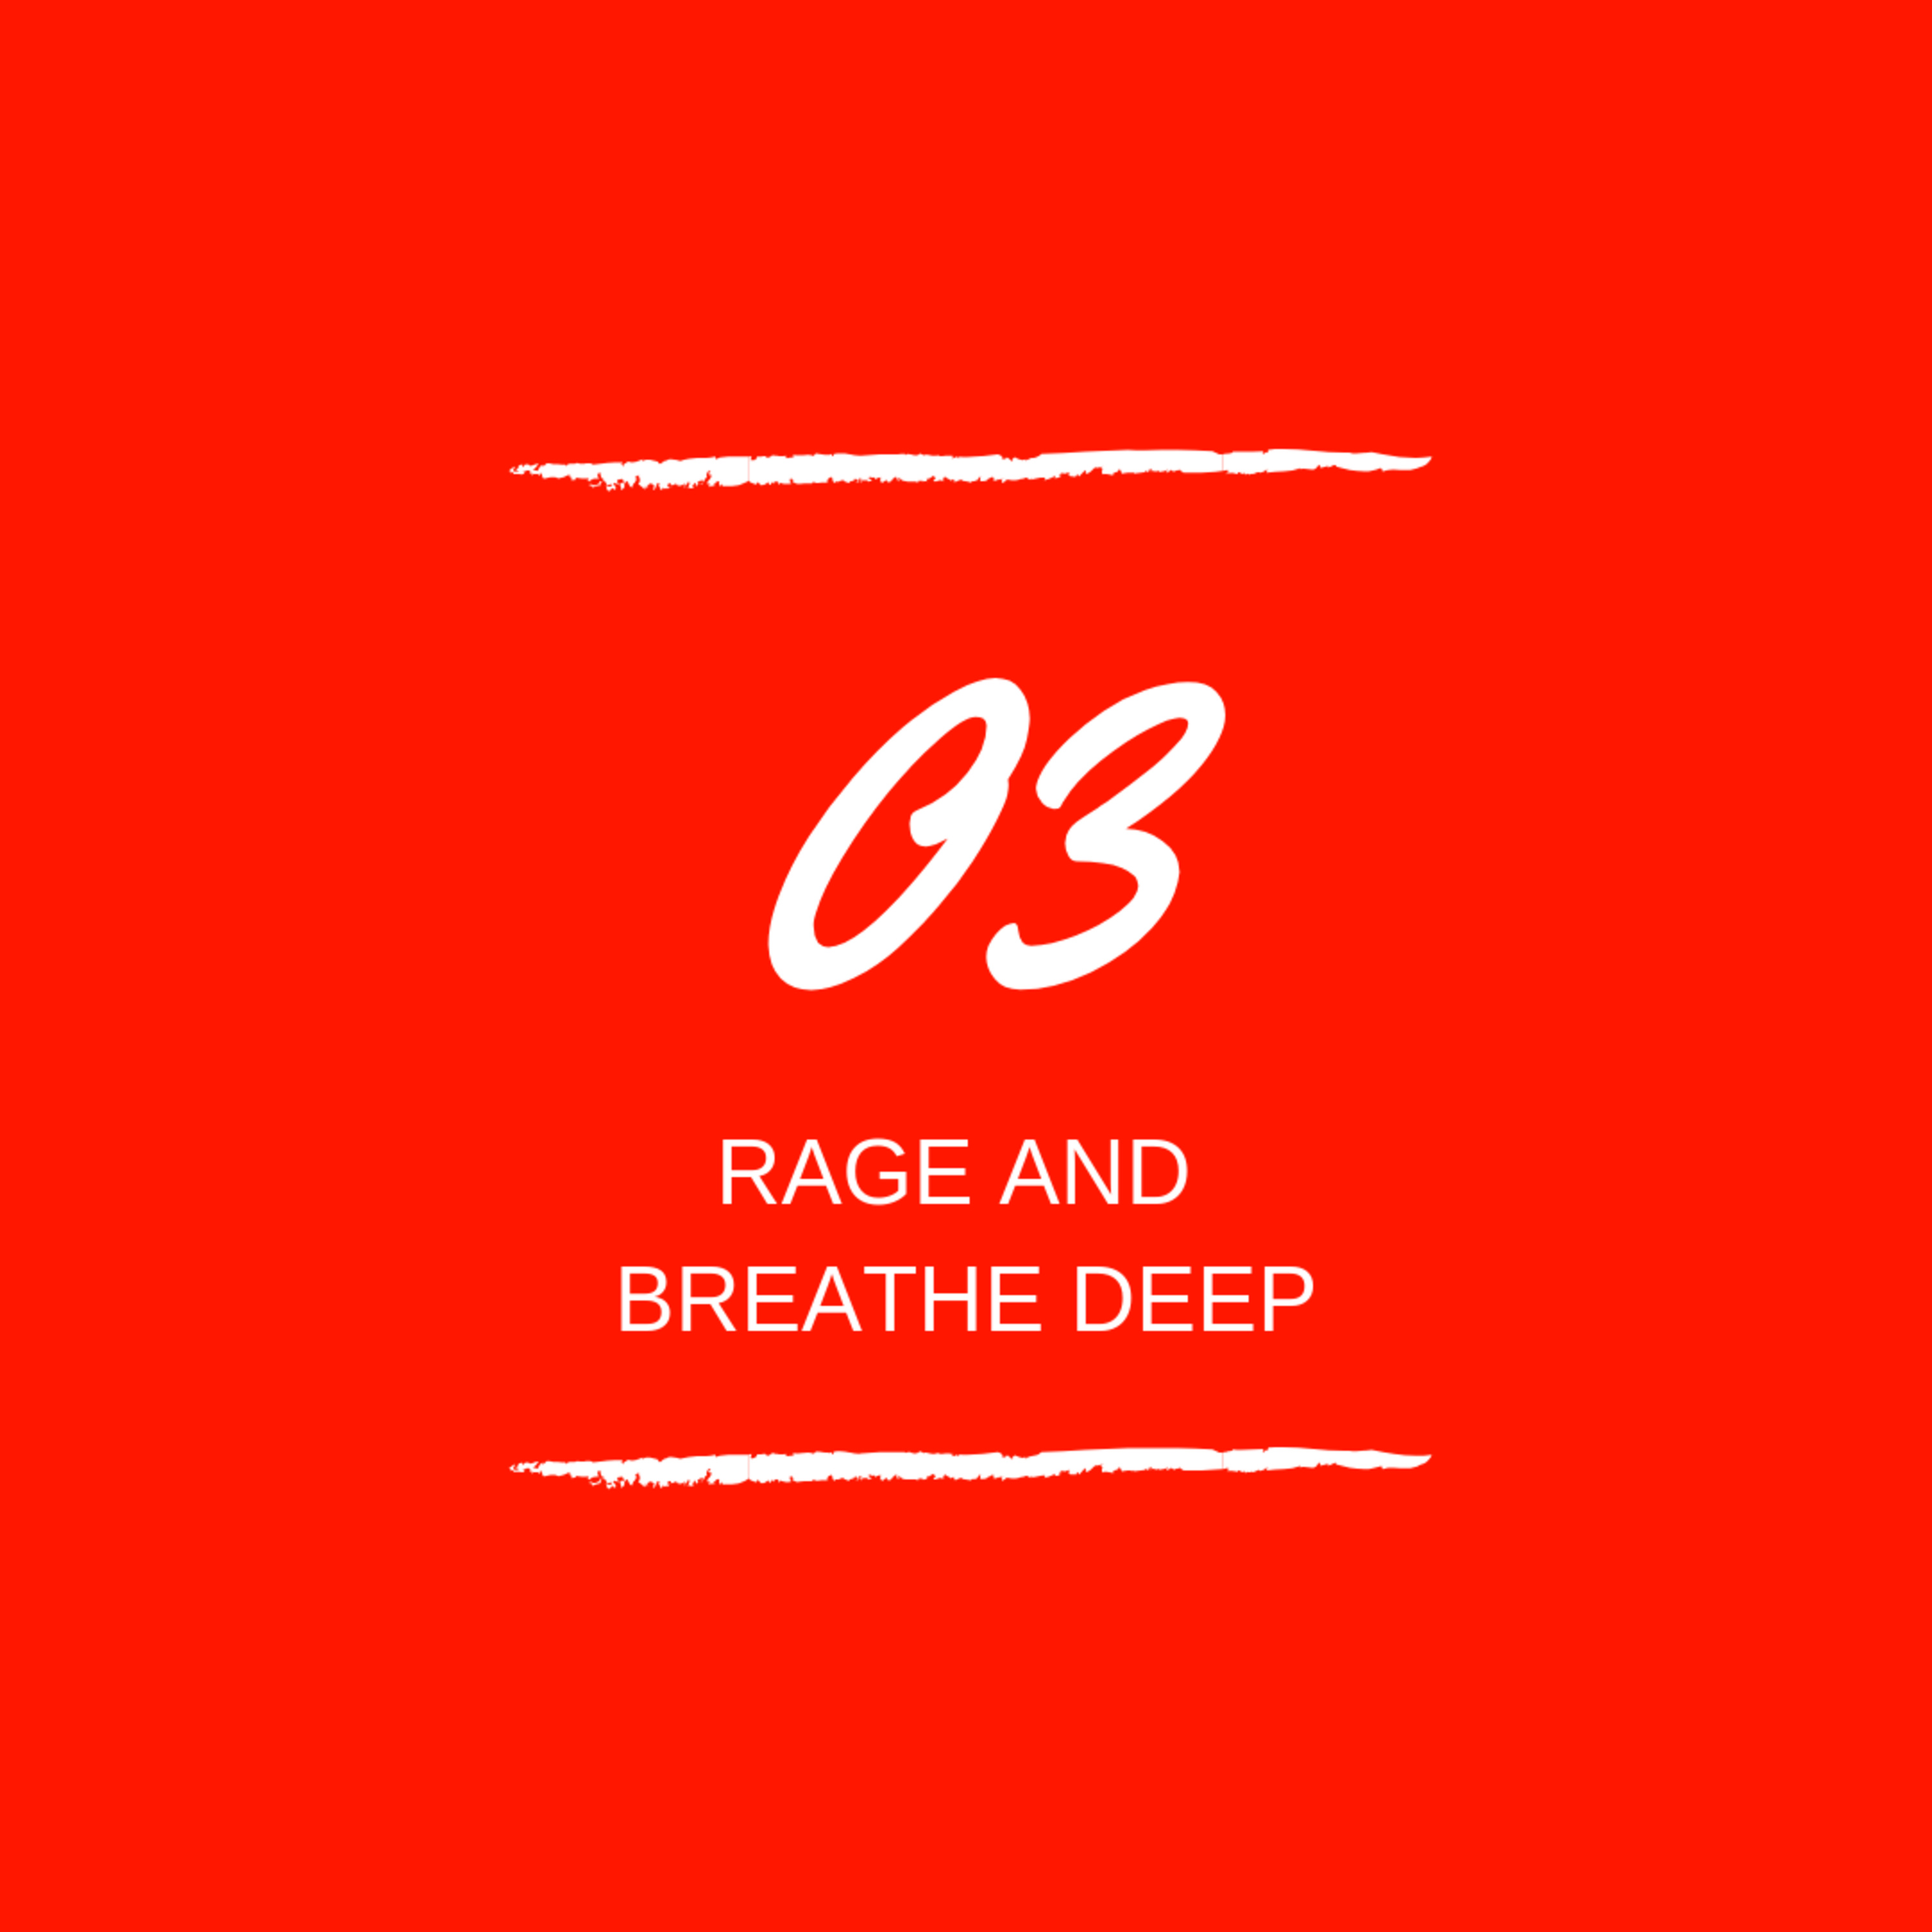 Day 03 : 😡 Rage and Breathe Deep